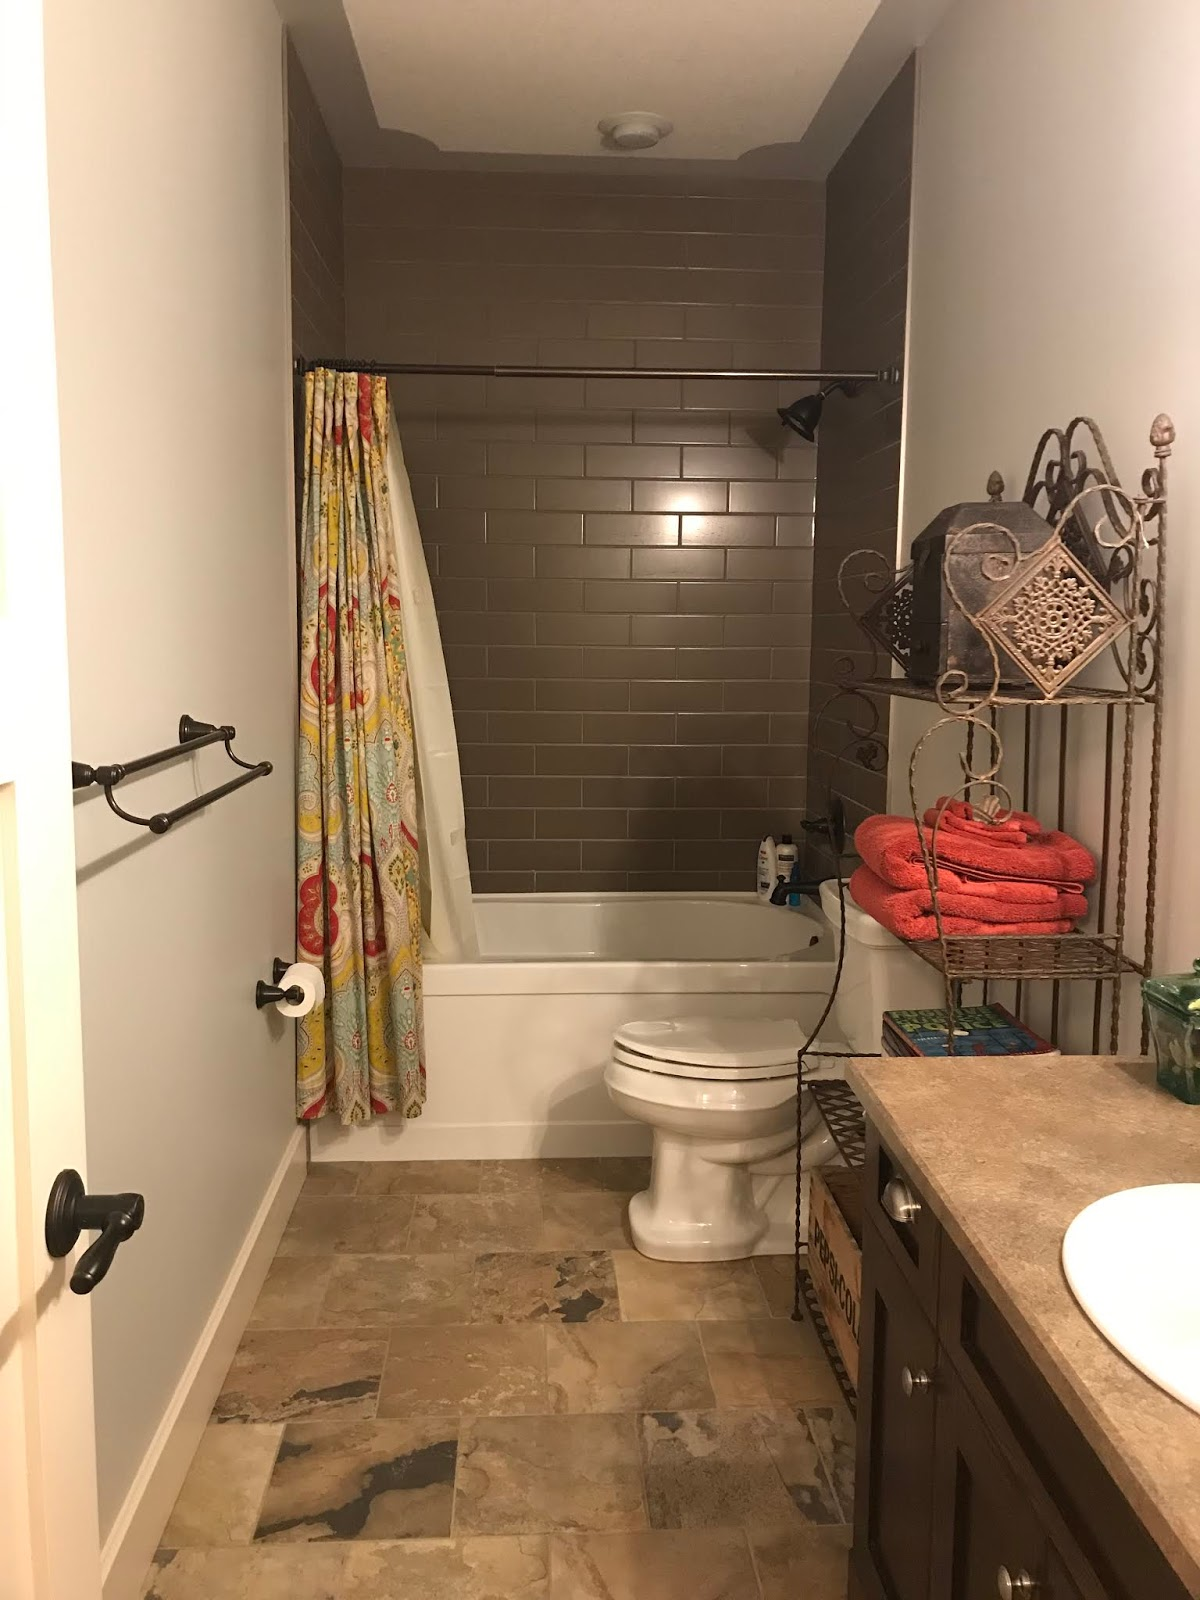 Short shower curtain makes bathroom feel smaller